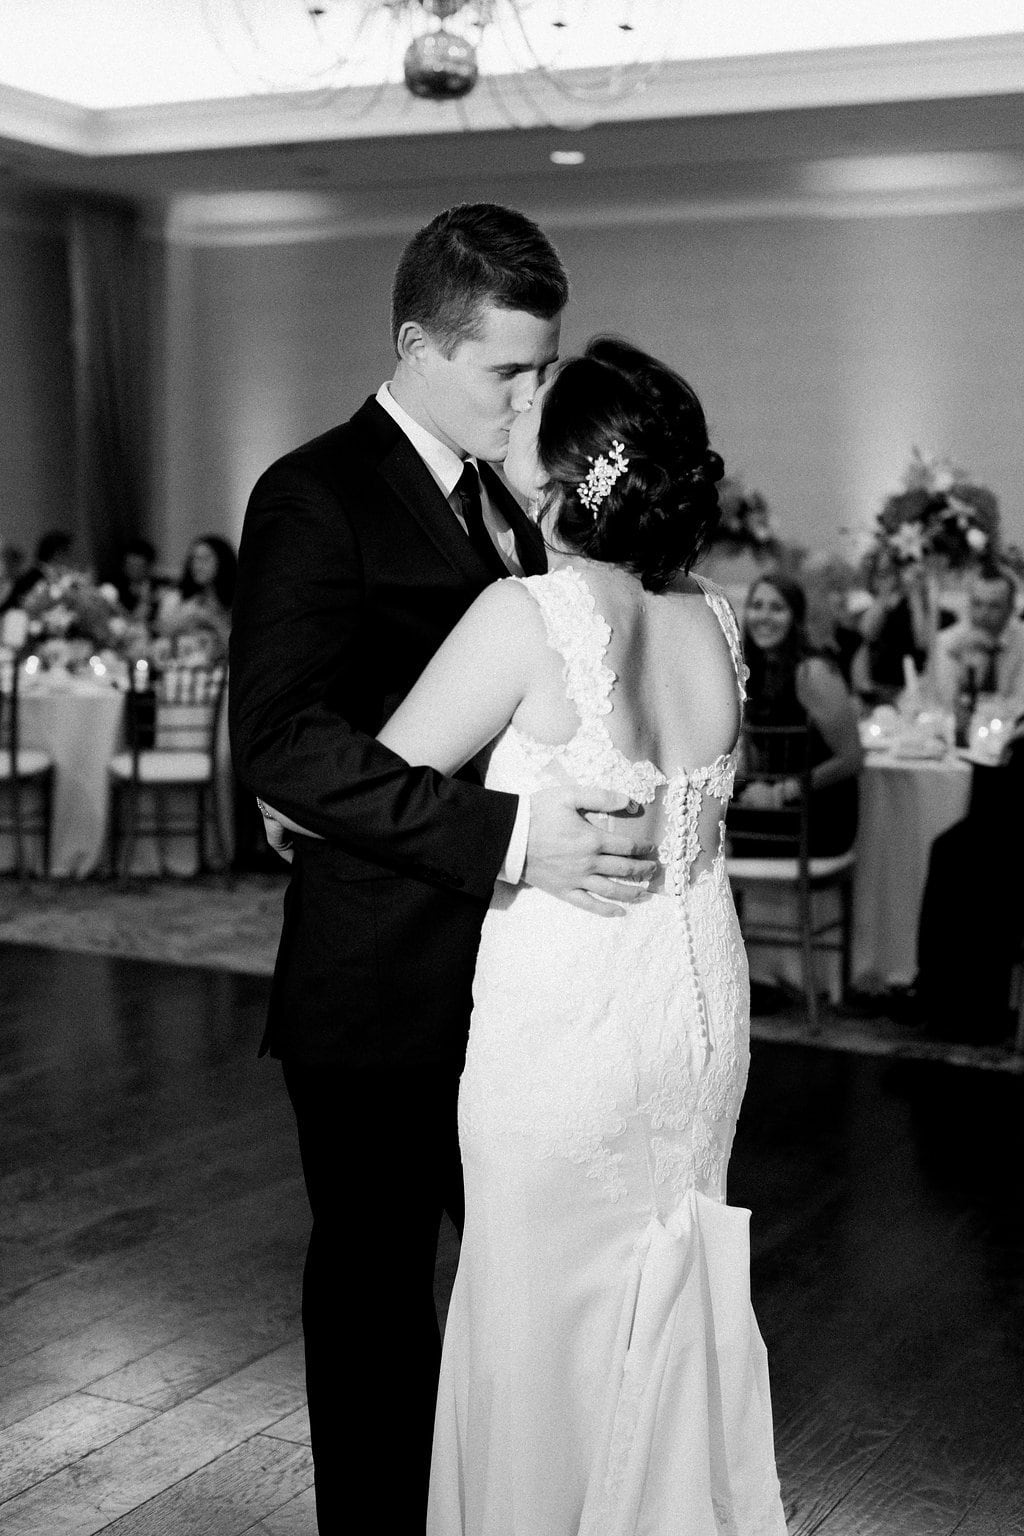 Black and white photo of bride and groom having their first dance